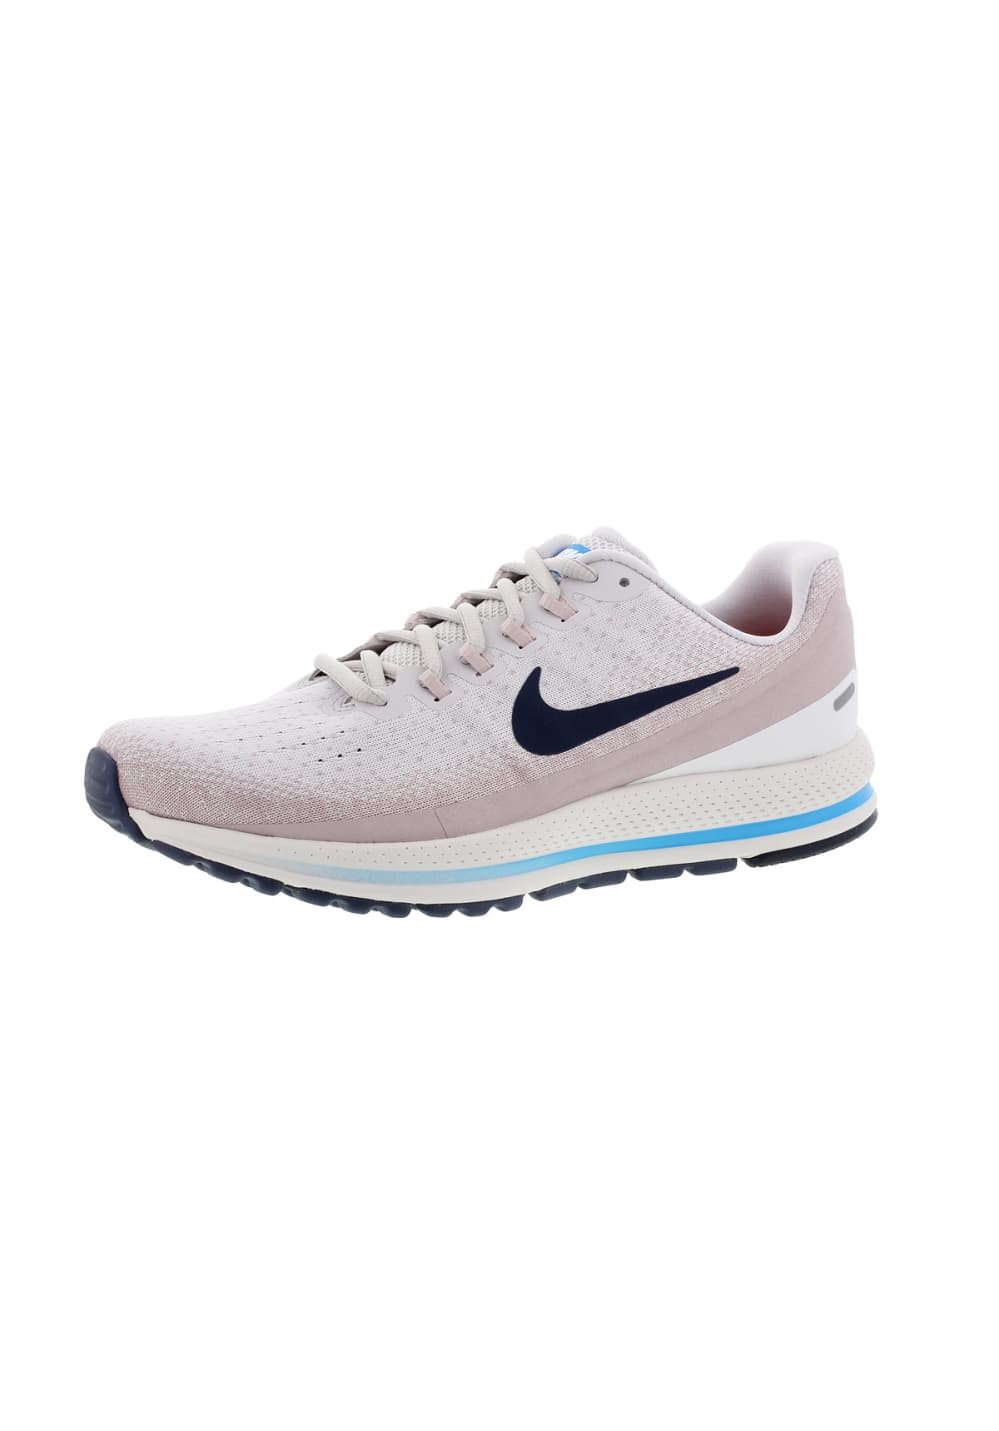 competitive price cbb7d 0dd2a Nike Air Zoom Vomero 13 - Running shoes for Women - Pink